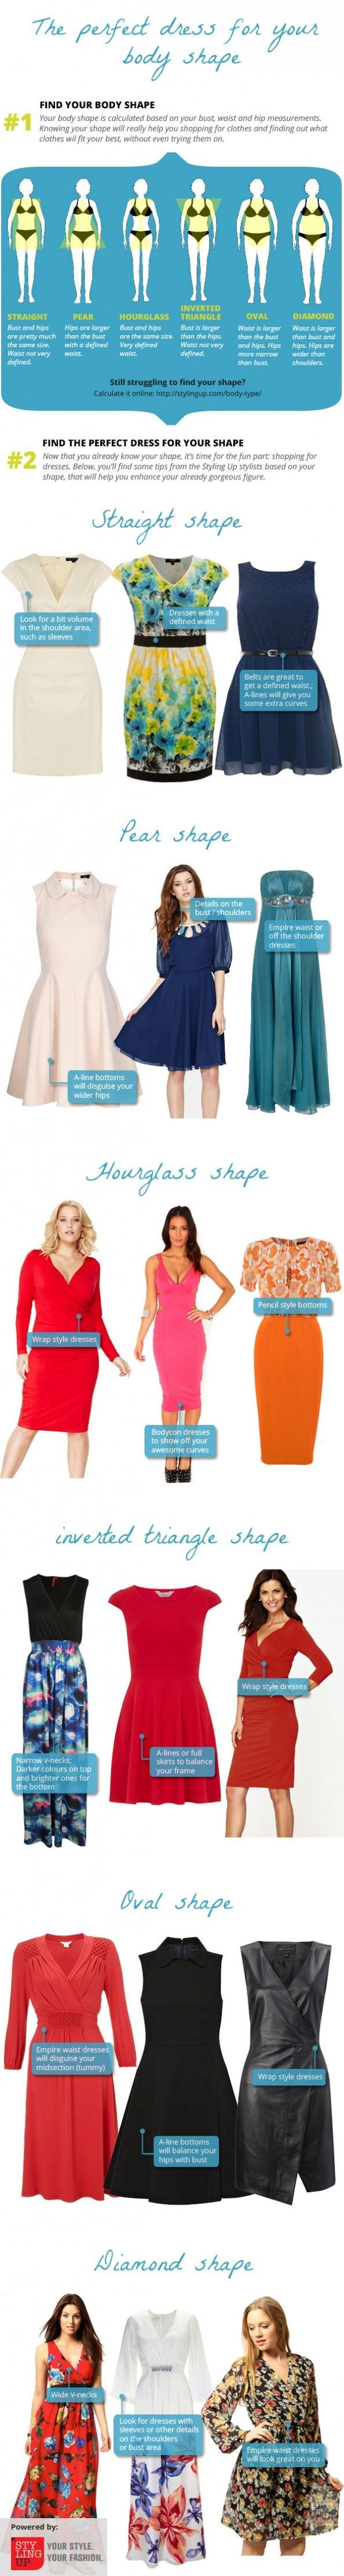 The perfect dress for your body shape #infografía